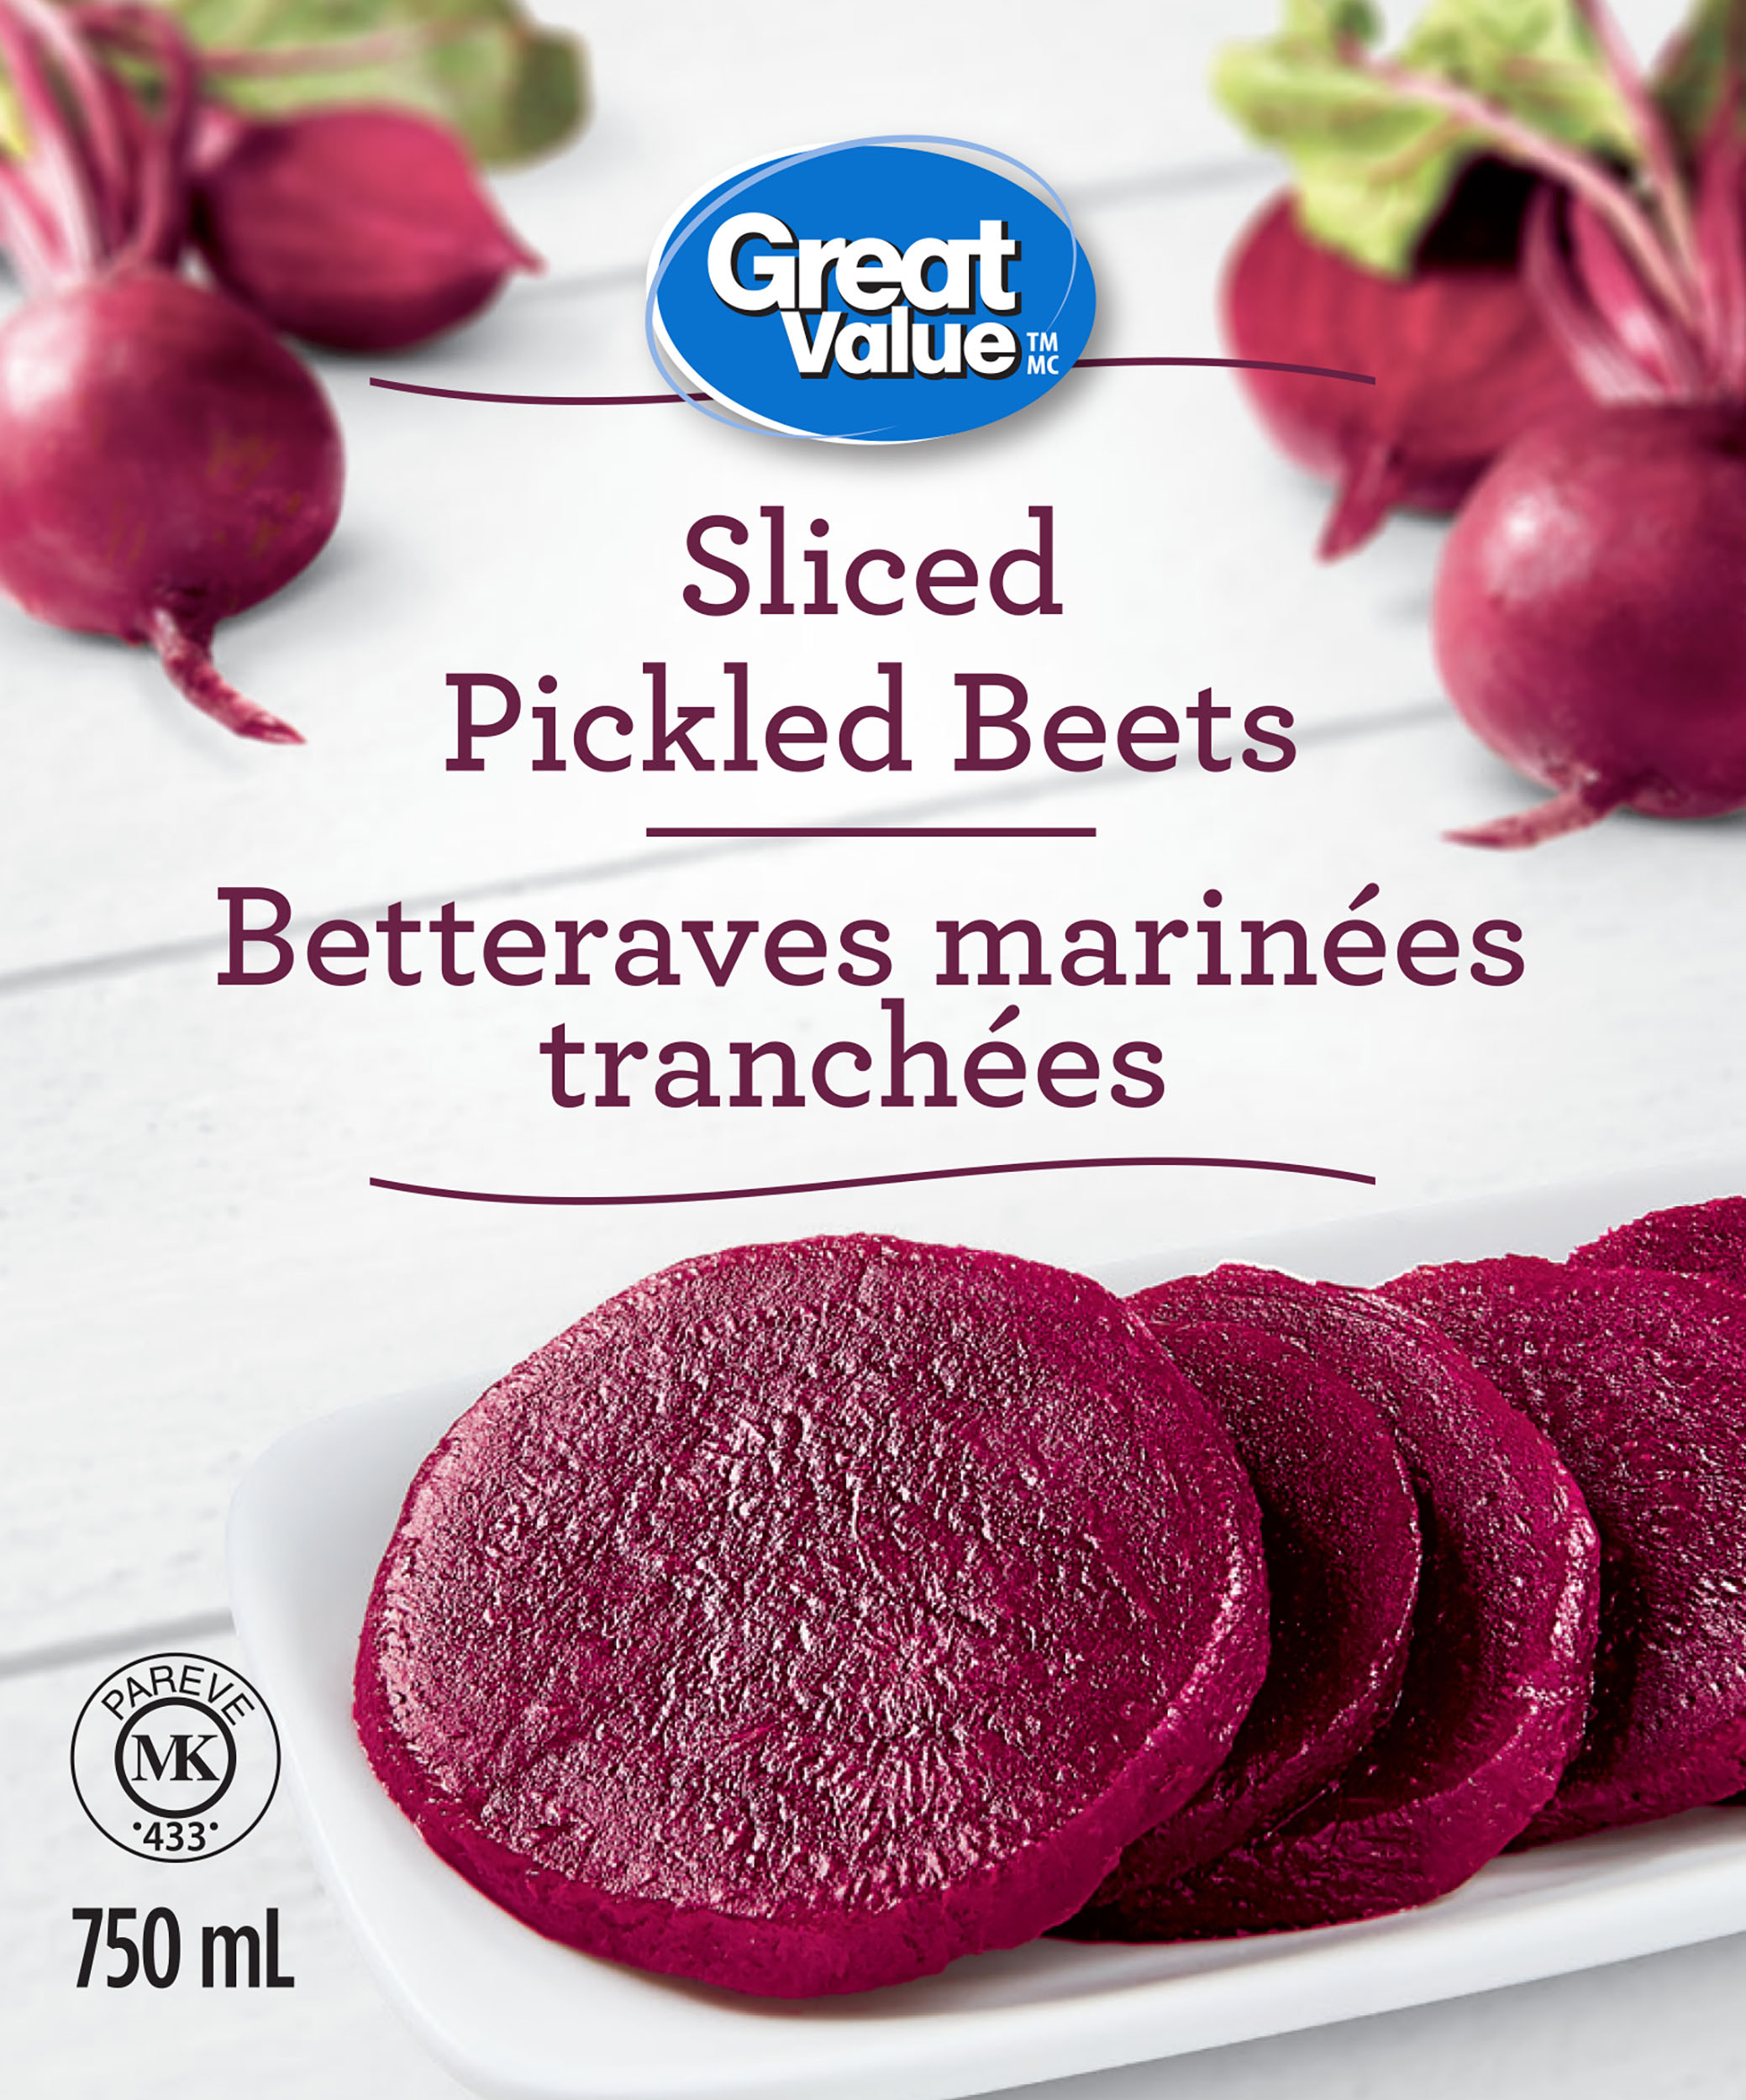 flat_91259_GV3_PickledSlicedBeets750mL_caWFC_lbl_Final_LR-2